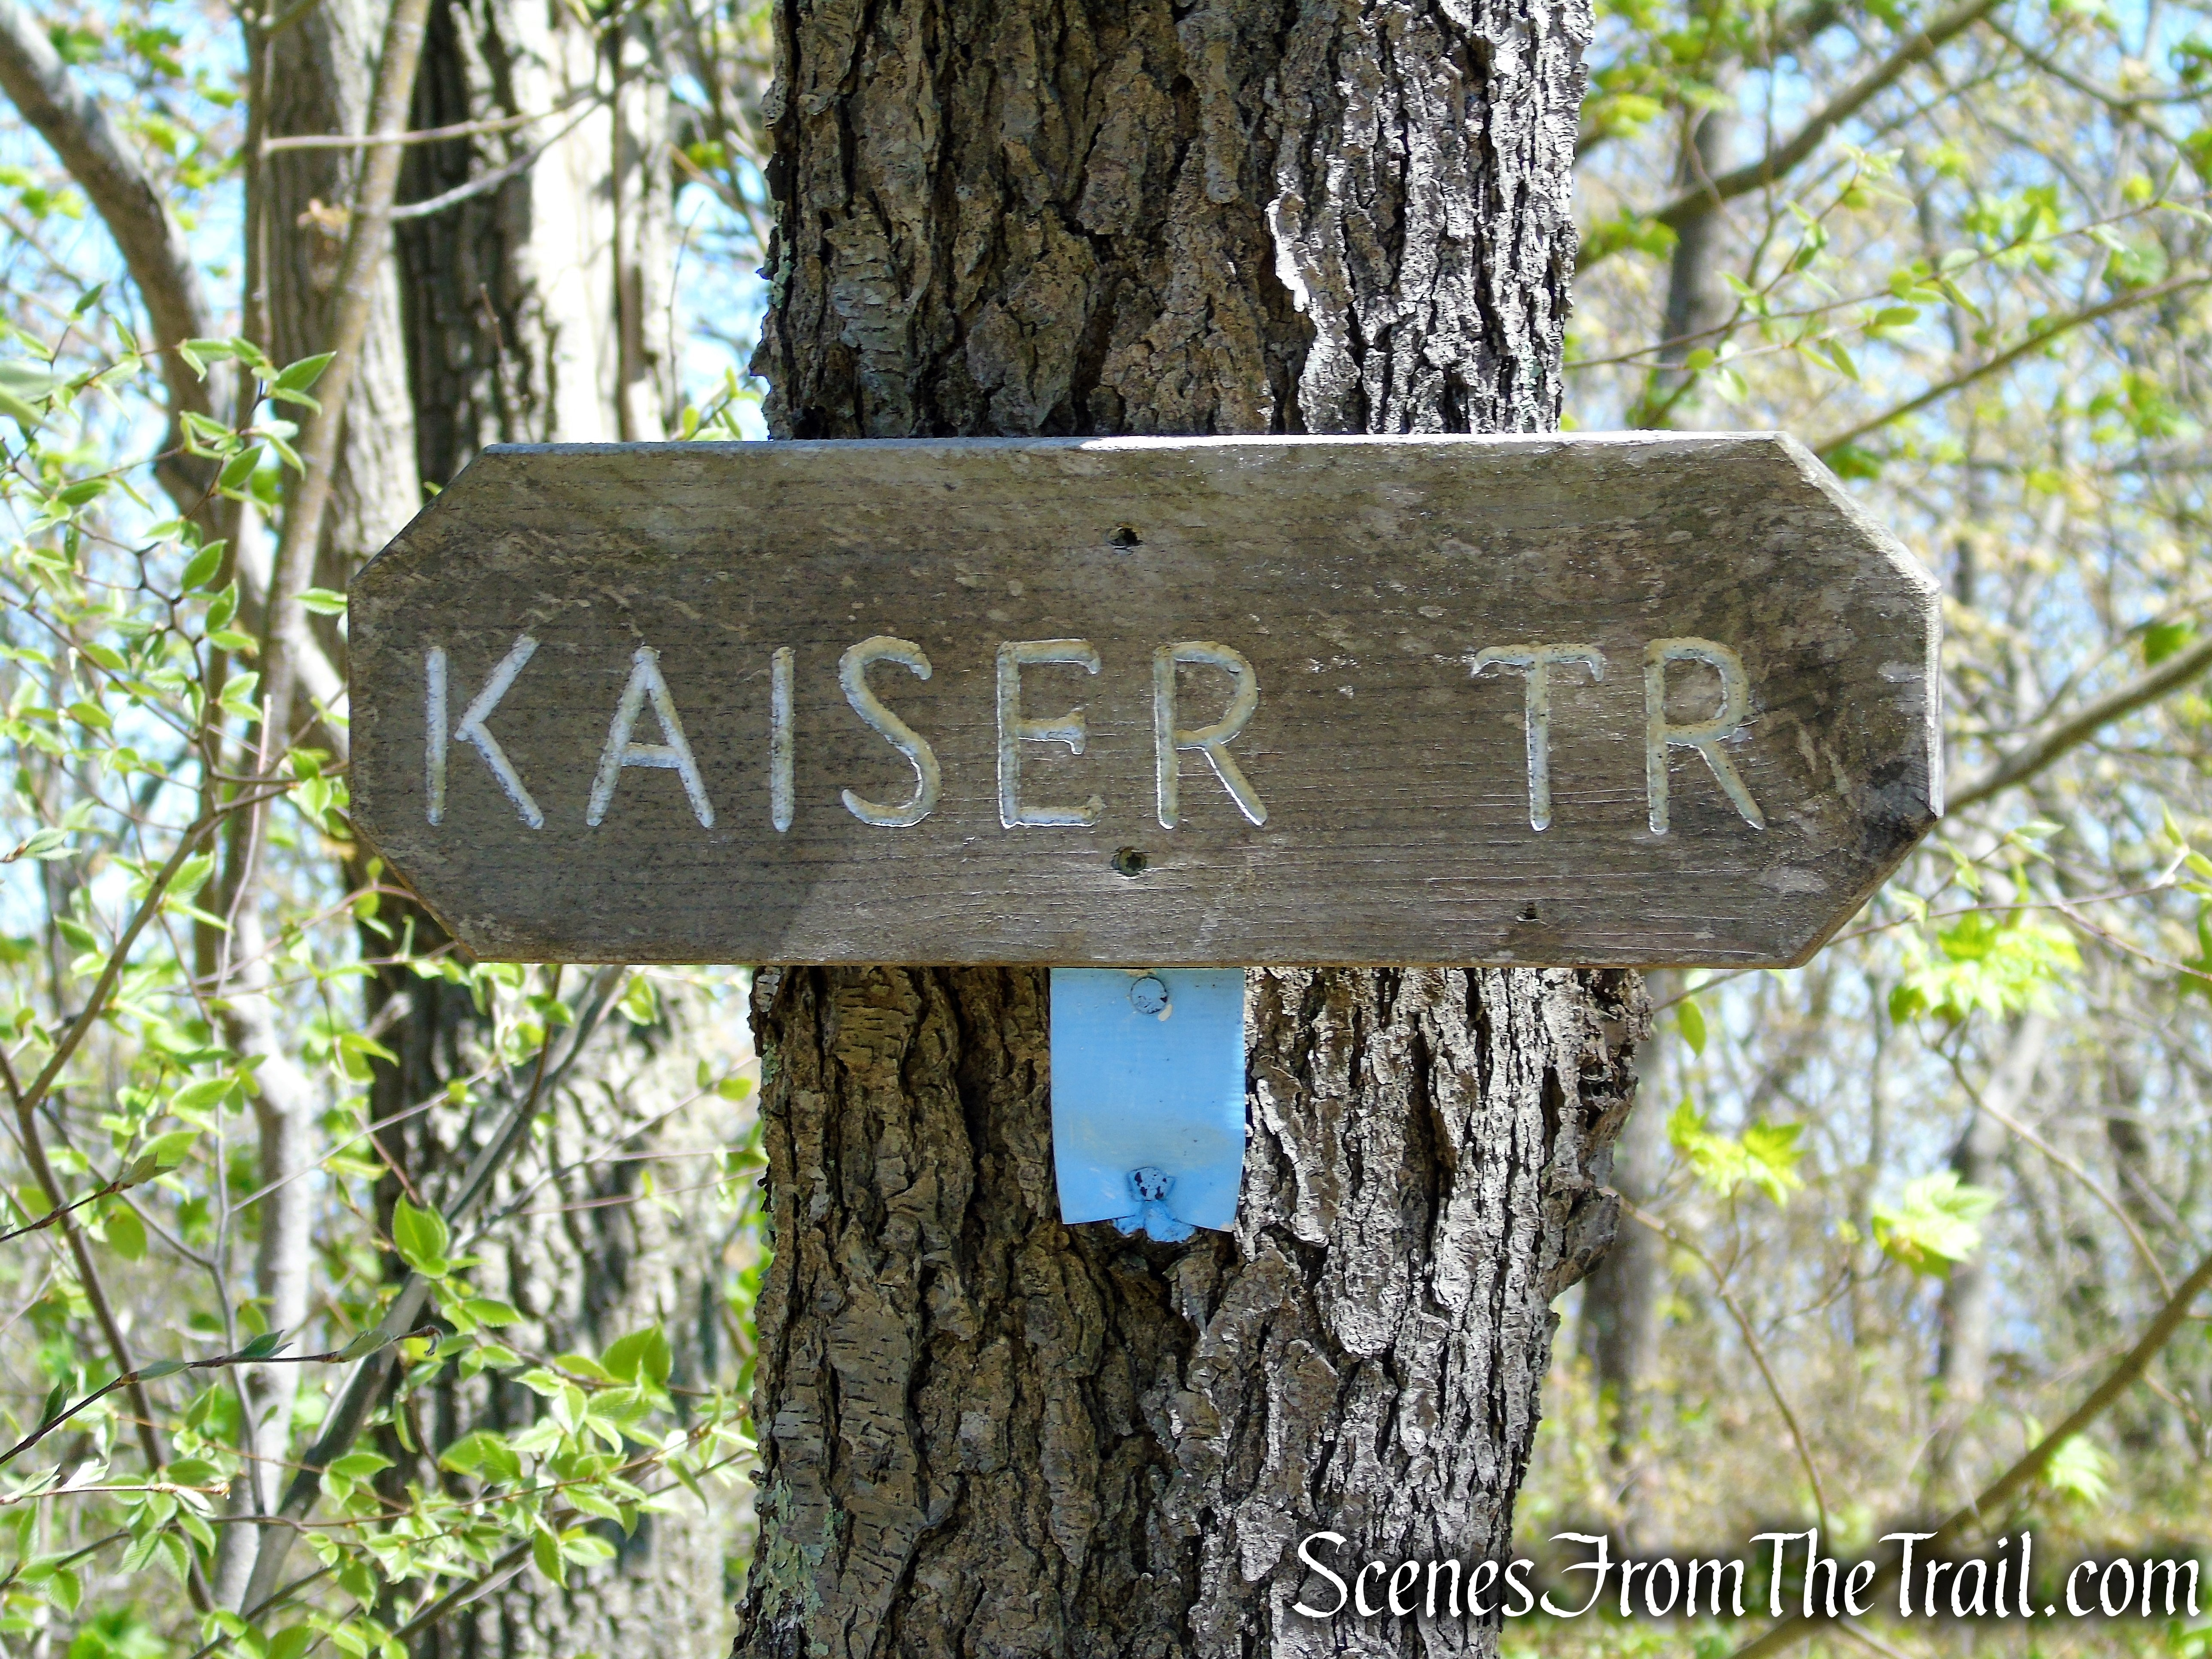 Continue past the junction with the Kaiser Trail